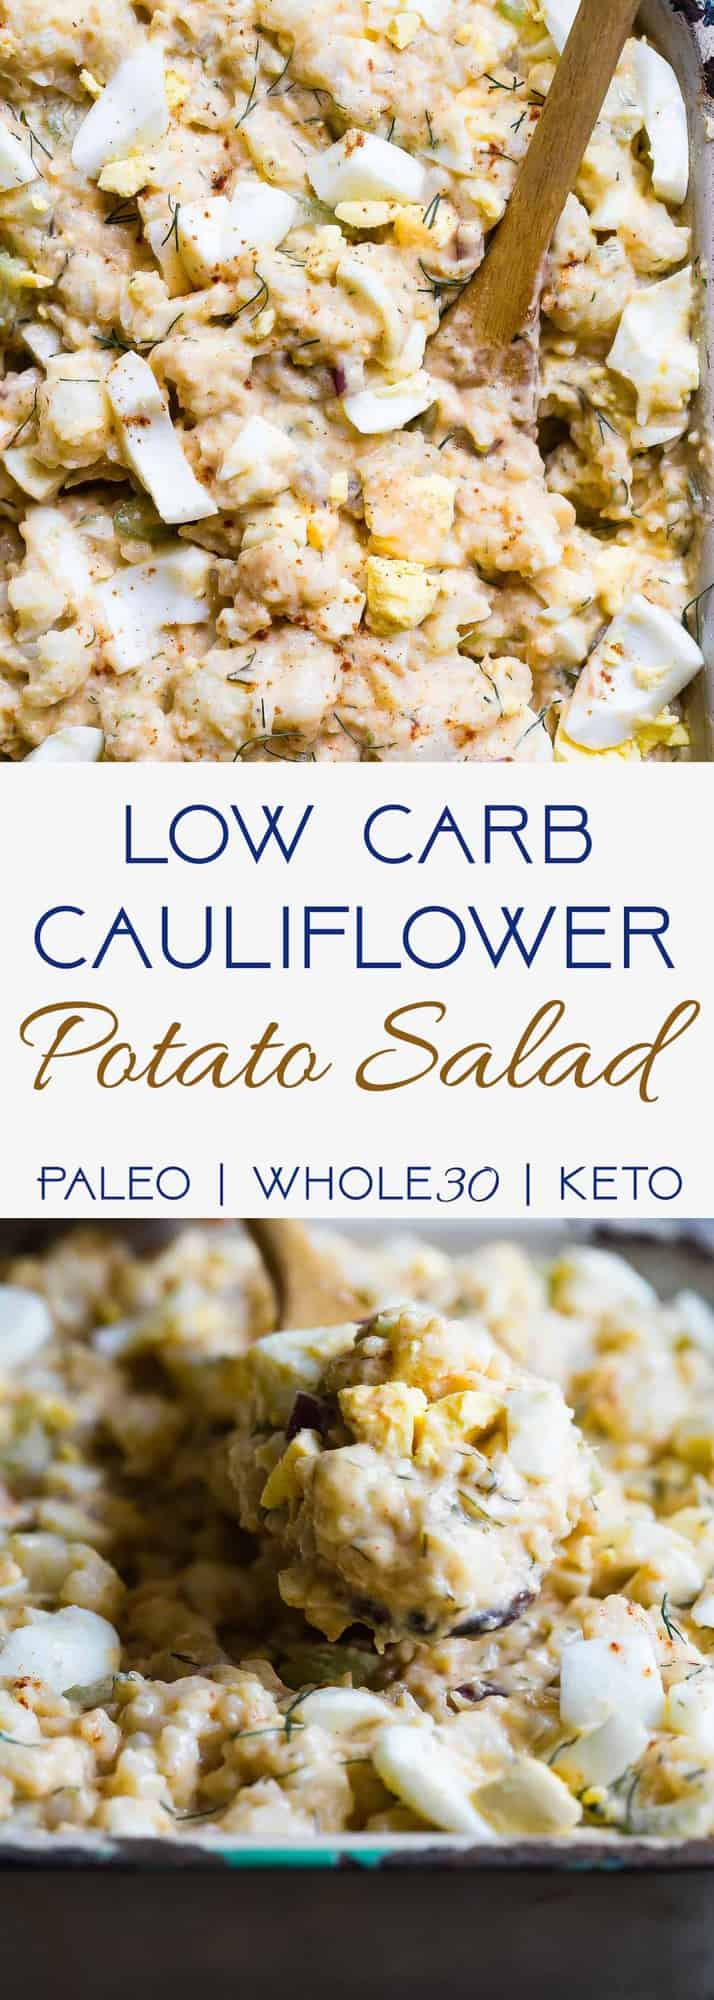 Low Carb Cauliflower Potato Salad -  This keto, paleo and whole30 Cauliflower Potato Salad tastes EXACTLY like the classic potato salad without the carbs! Everyone will be fooled by this healthy comfort food! | #Foodfaithfitness | #Paleo #Keto #Glutenfree #Lowcarb #Whole30